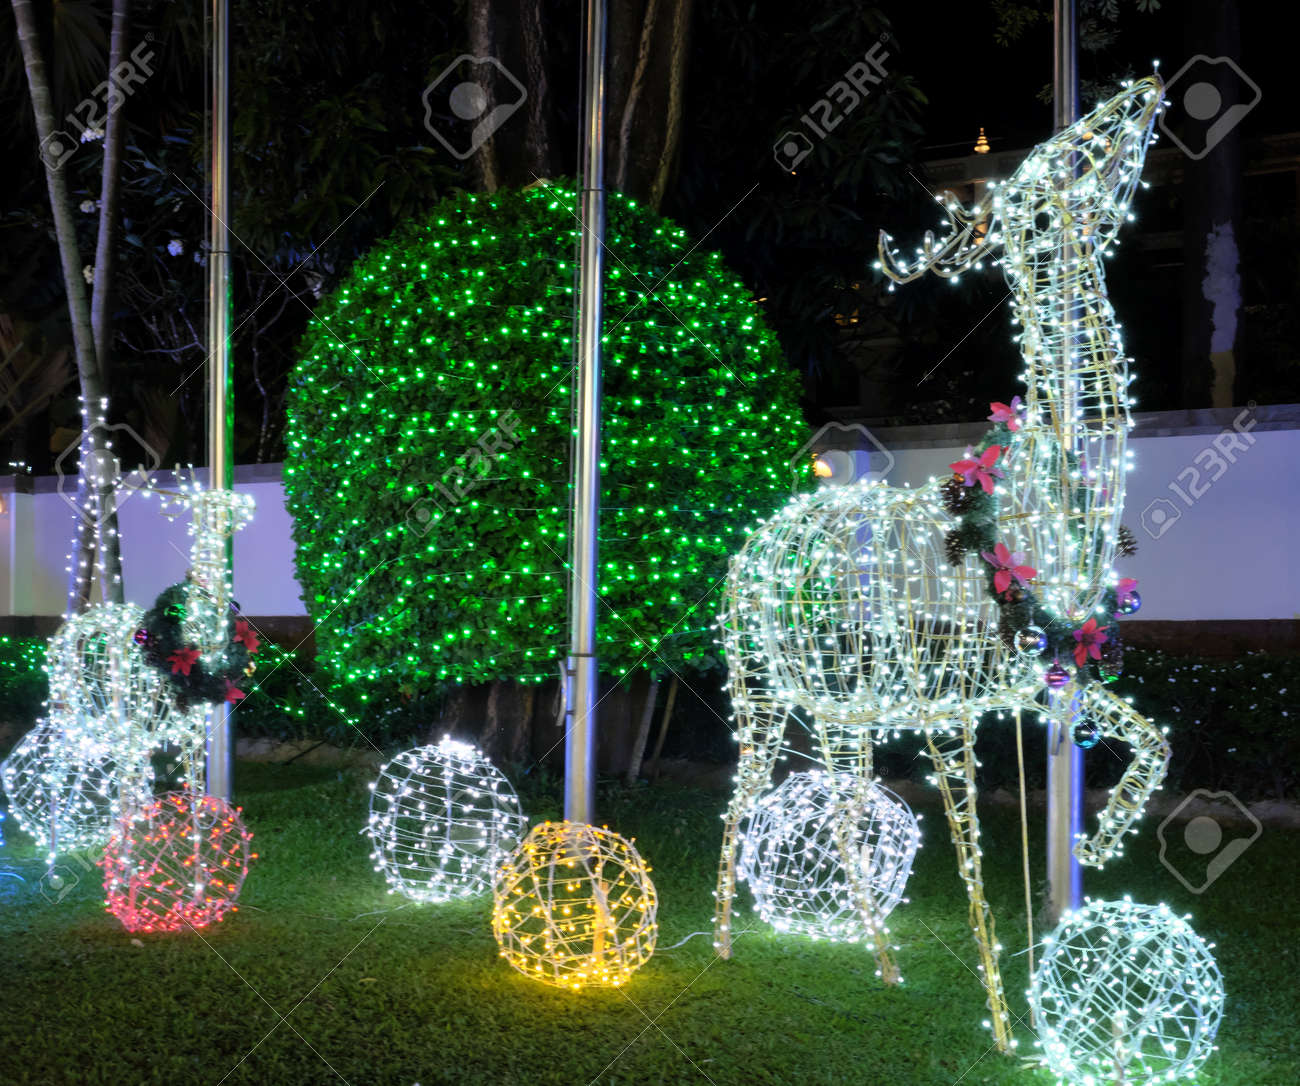 Christmas Decorations On The Street A Deer Made From Glowing Stock Photo Picture And Royalty Free Image Image 123296262